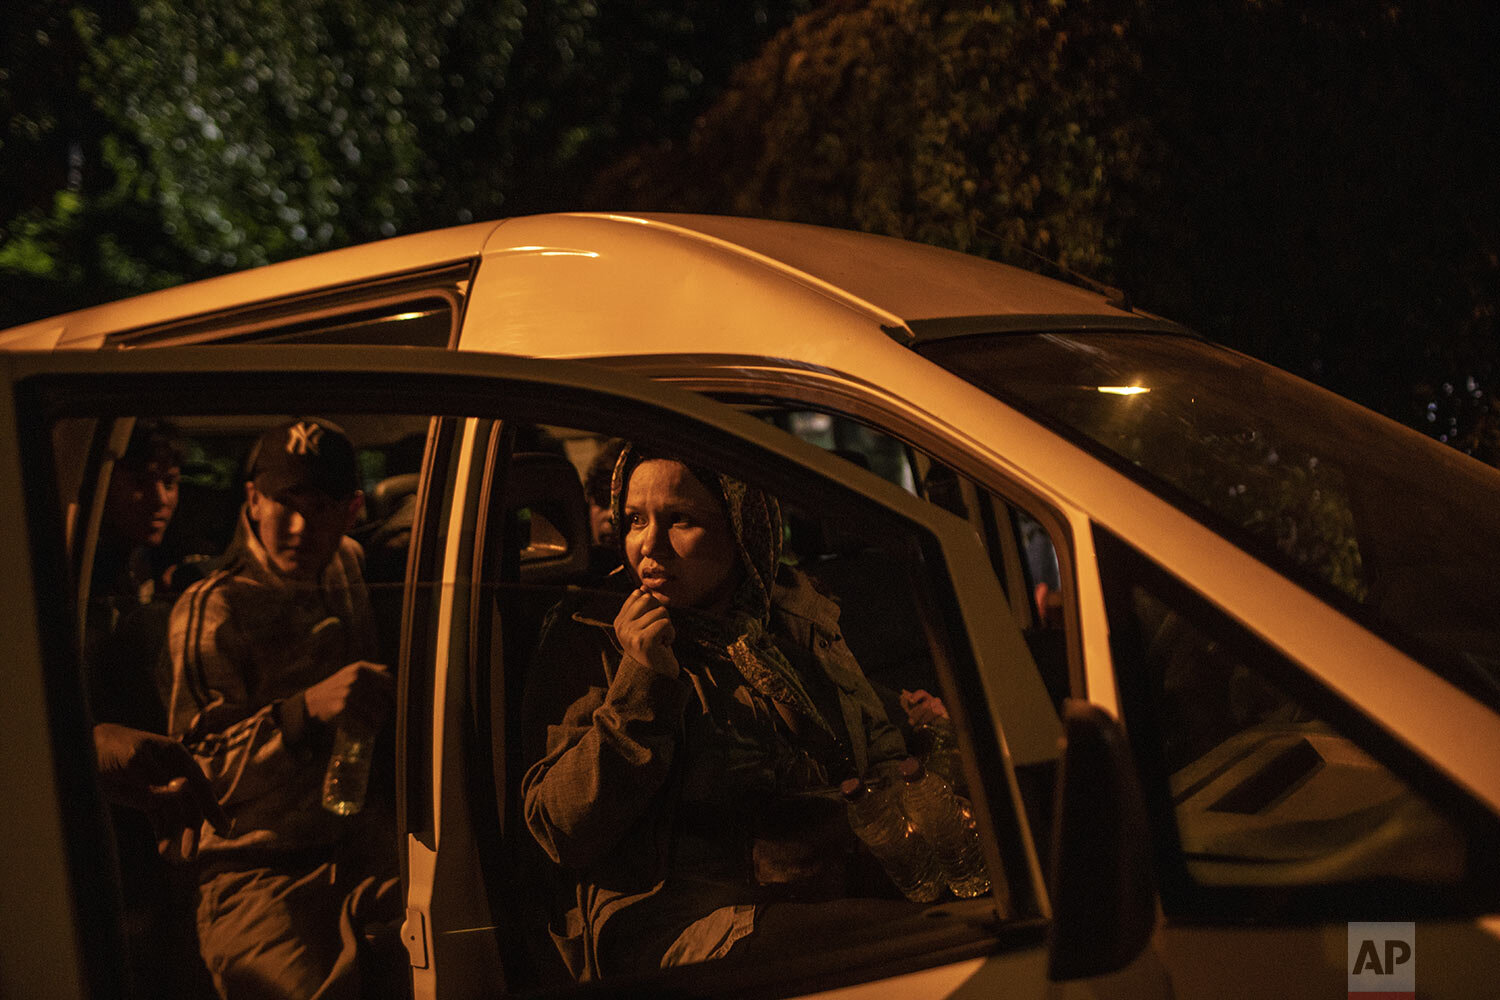 Newly-arrived migrants and refugees look out from a van at the harbor of Skala Sikamias, on the Greek island of Lesbos, early Thursday, Oct. 3, 2019. (AP Photo/Petros Giannakouris)